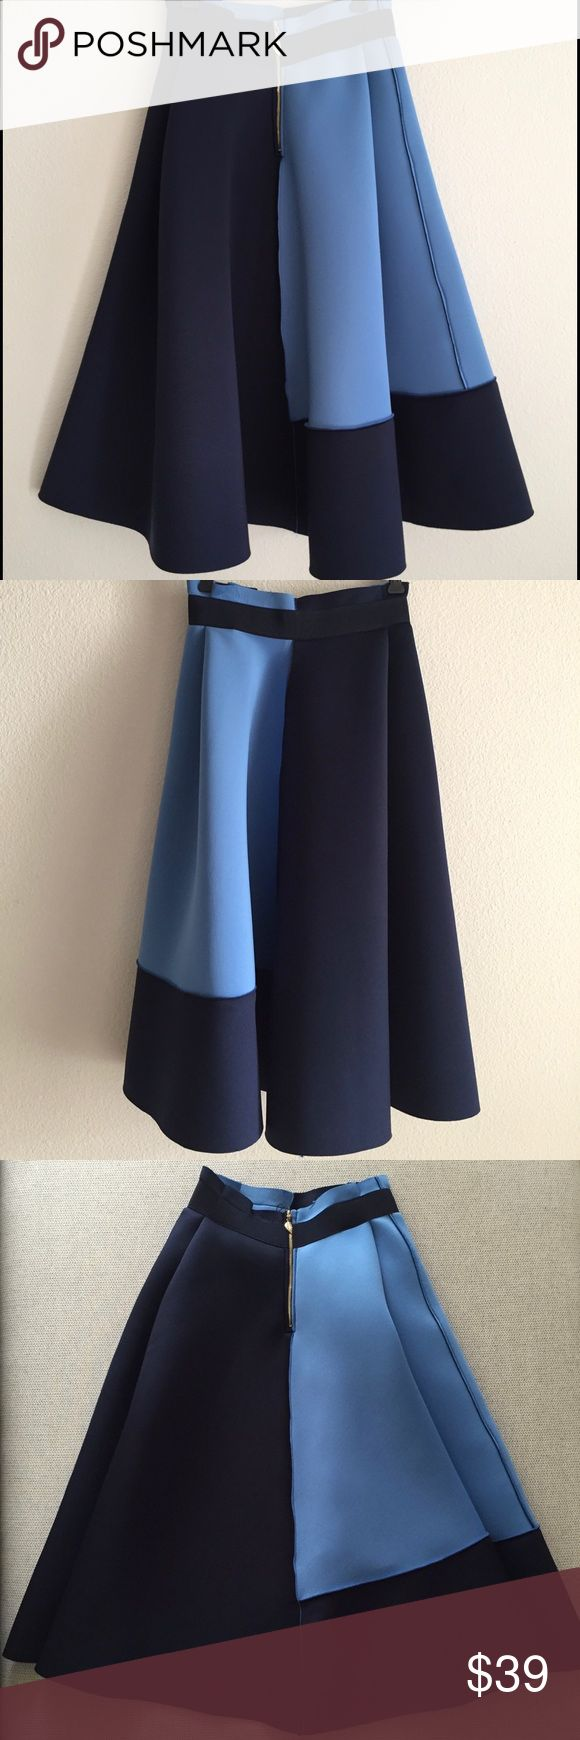 Glamorous Full Skirt This flowy skirt is great to pair up with just a white tank top, flats or pumps. Add a short Cardigan to complete the look. Fabric is a scuba-like thin material. Holds form well. Laid flat: Length 20 inches, tip to tip of the skirt is 54 inches, Waist is 24 inches. 95% Polyester, 5% Elastane. Glamorous Skirts Midi